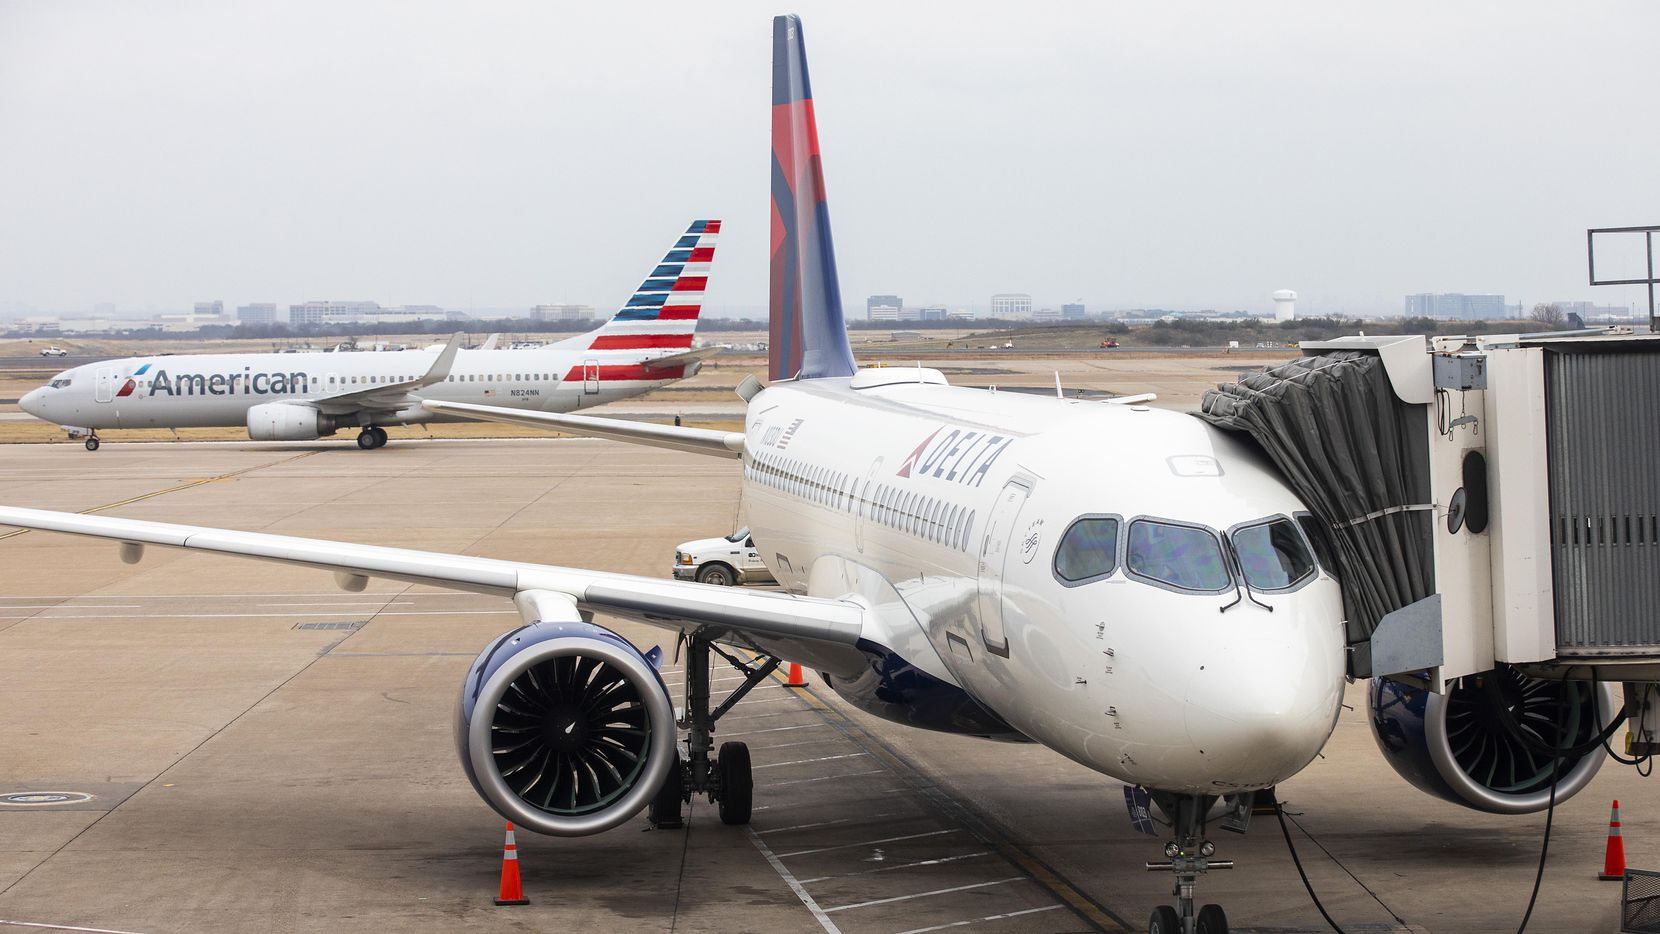 American and Delta are in talks with lenders for loans to help the airline's weather the coronavirus pandemic.